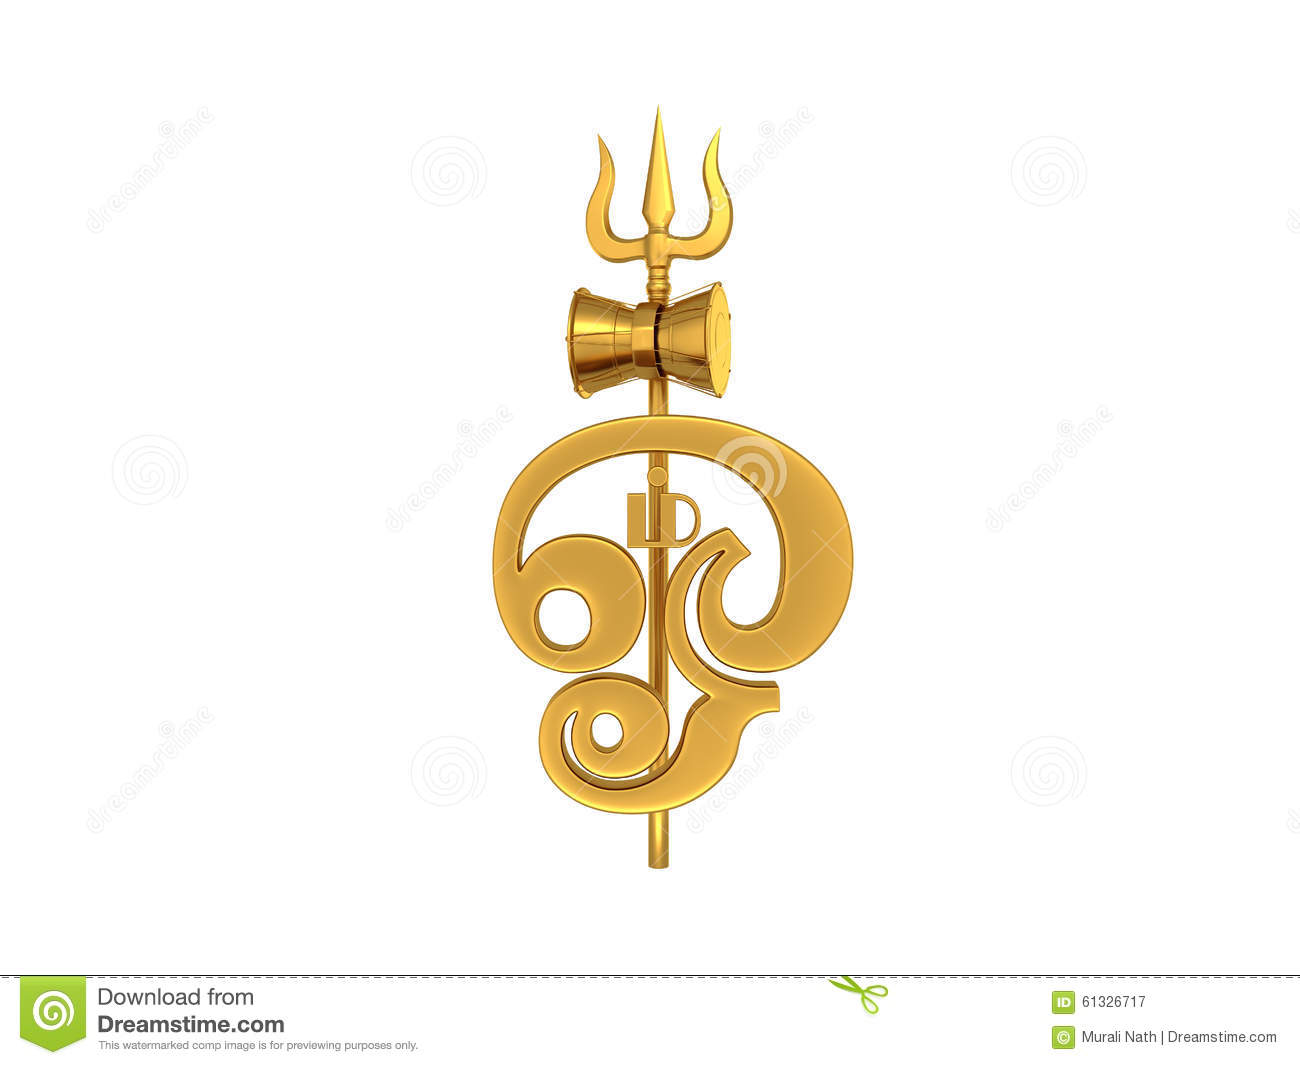 Tamil om symbol with trident stock illustration Om symbol images download